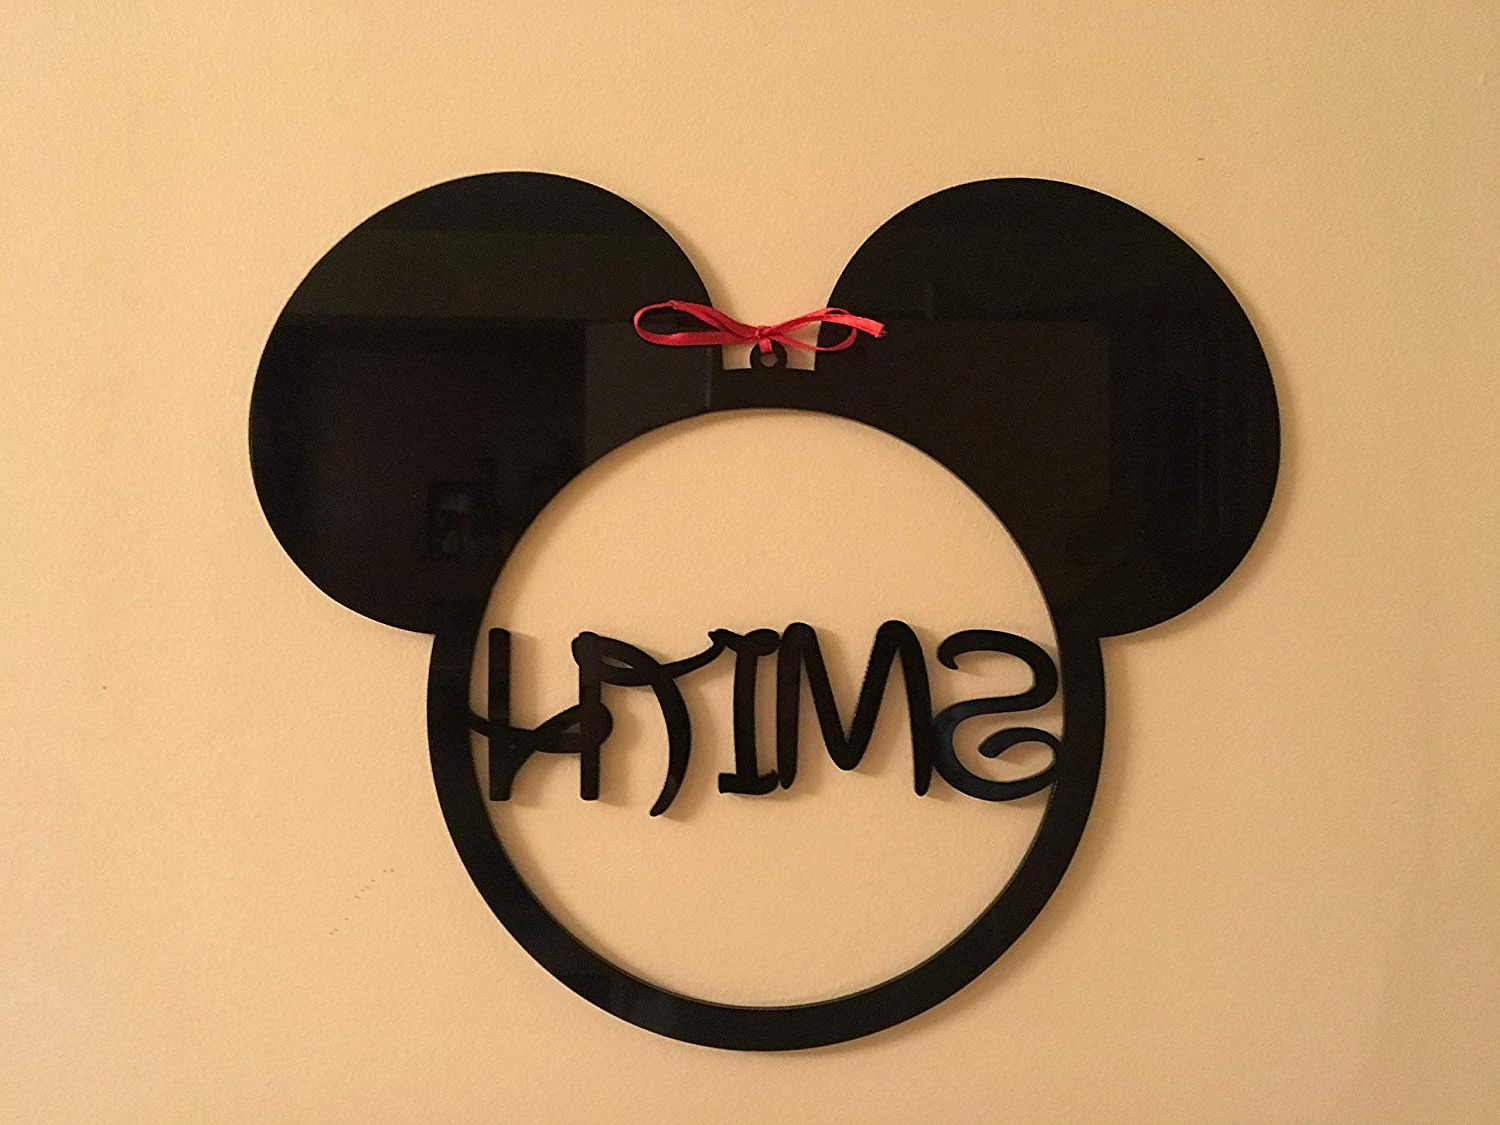 Mickey Mouse Monogram Personalized Any Name Sign Acrylic Hanging Wall  Decorations Minnie Mouse Ears Ornament Disney Shape Nursery Wall Art Gift  For In Most Recently Released Mickey Mouse Wall Mirrors (View 6 of 20)